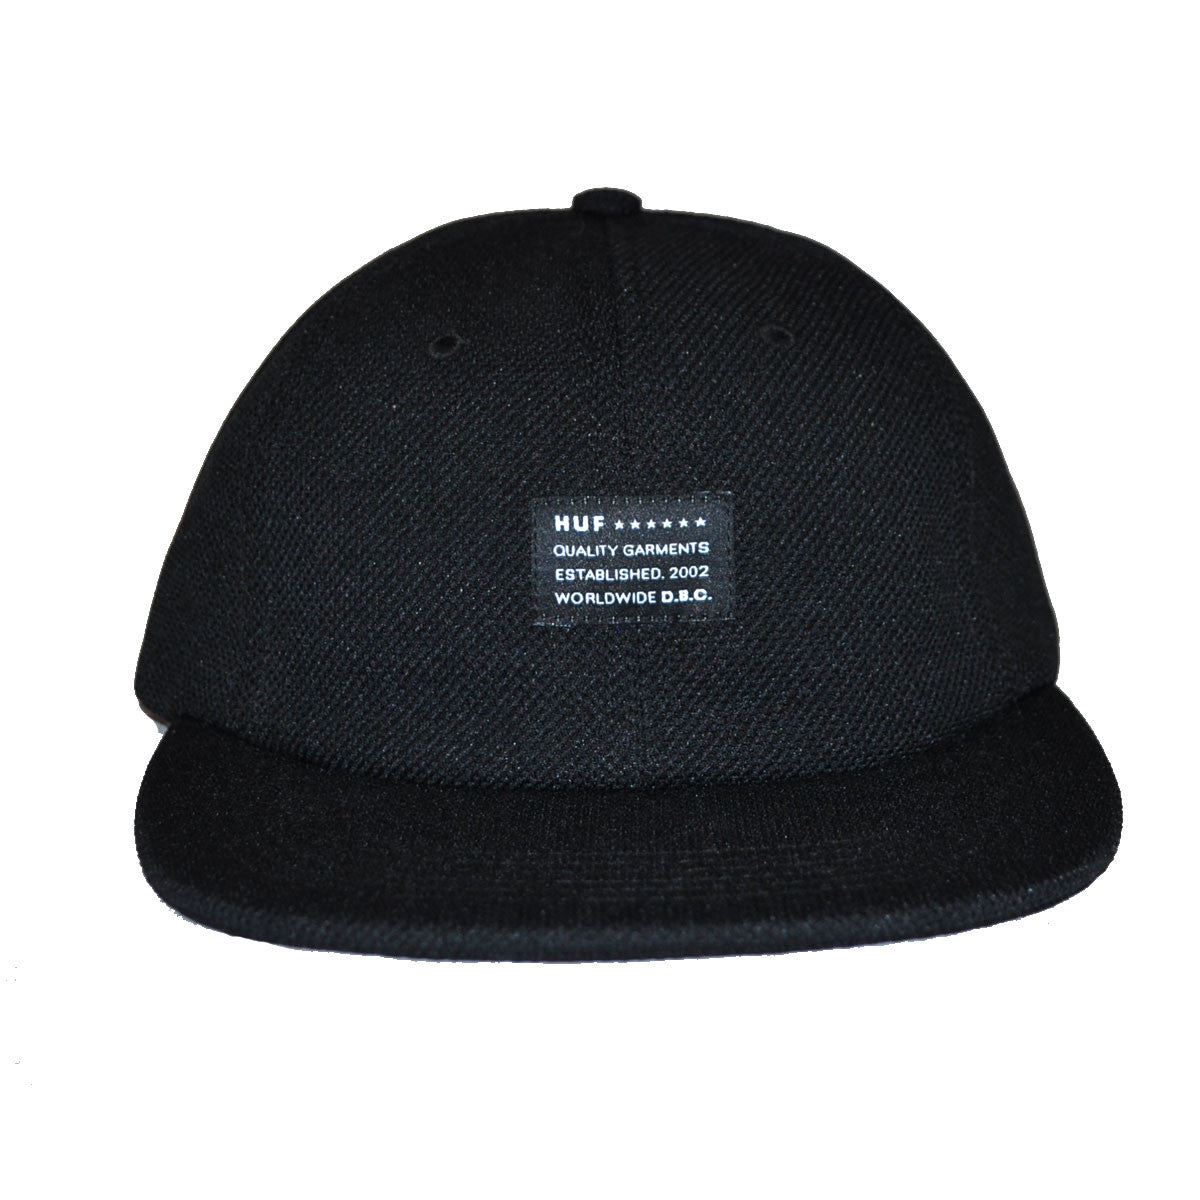 HUF - Diamond Knit 6 Panel Hat, Black - The Giant Peach - 2